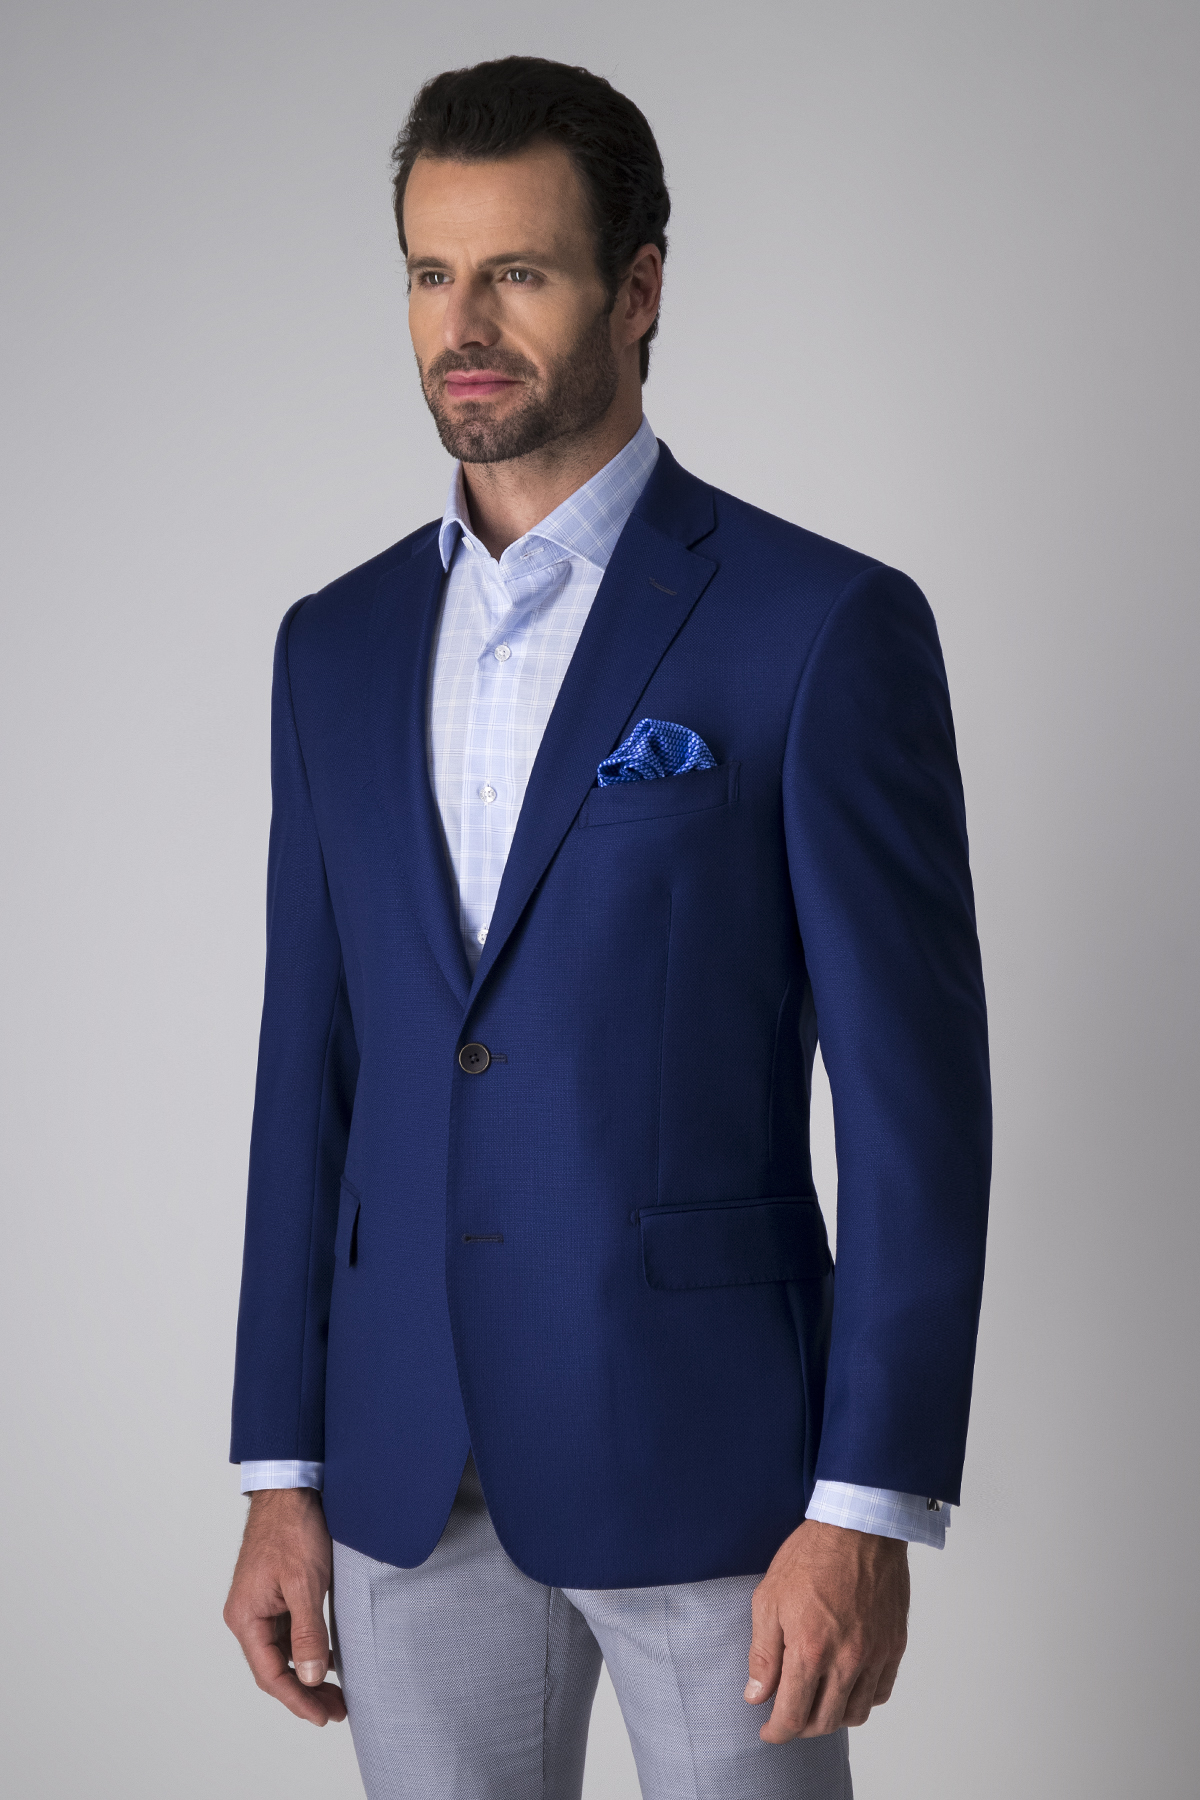 Saco Calderoni,  tela italiana color azul, fit contemporáneo.